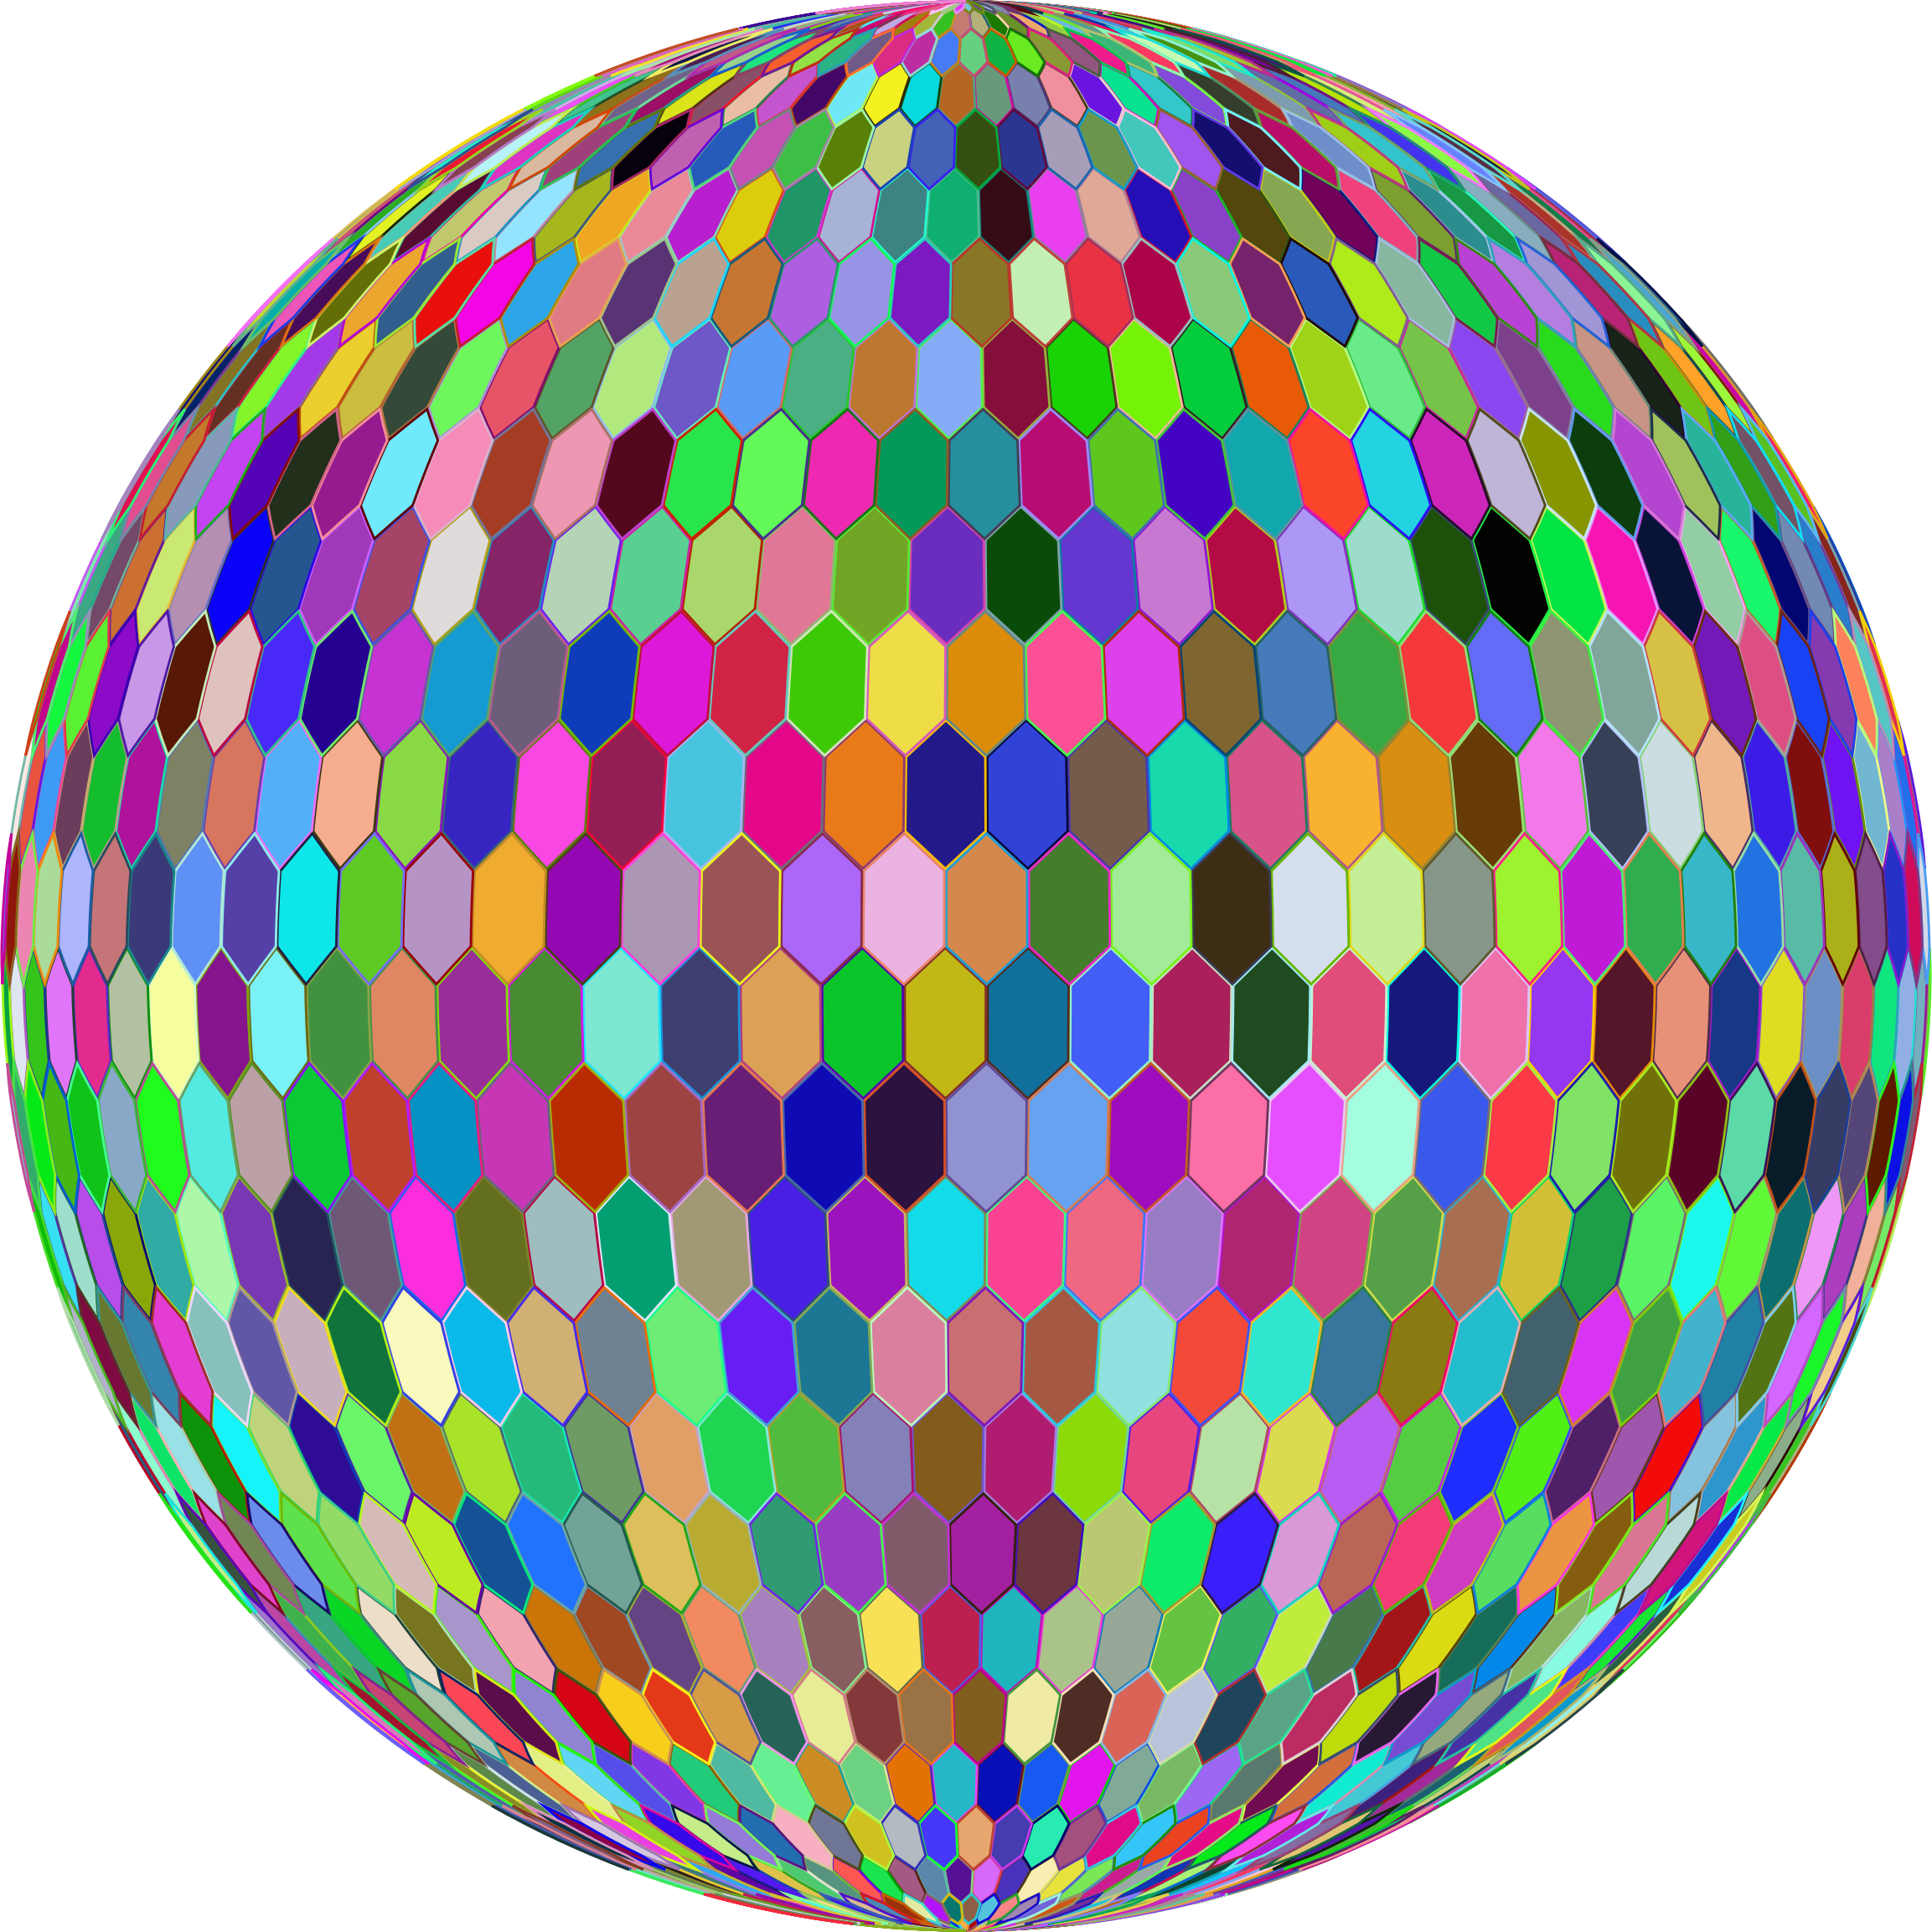 Prismatic Hexagonal Grid Sphere Variation 2 With Strokes Variation 2 by GDJ